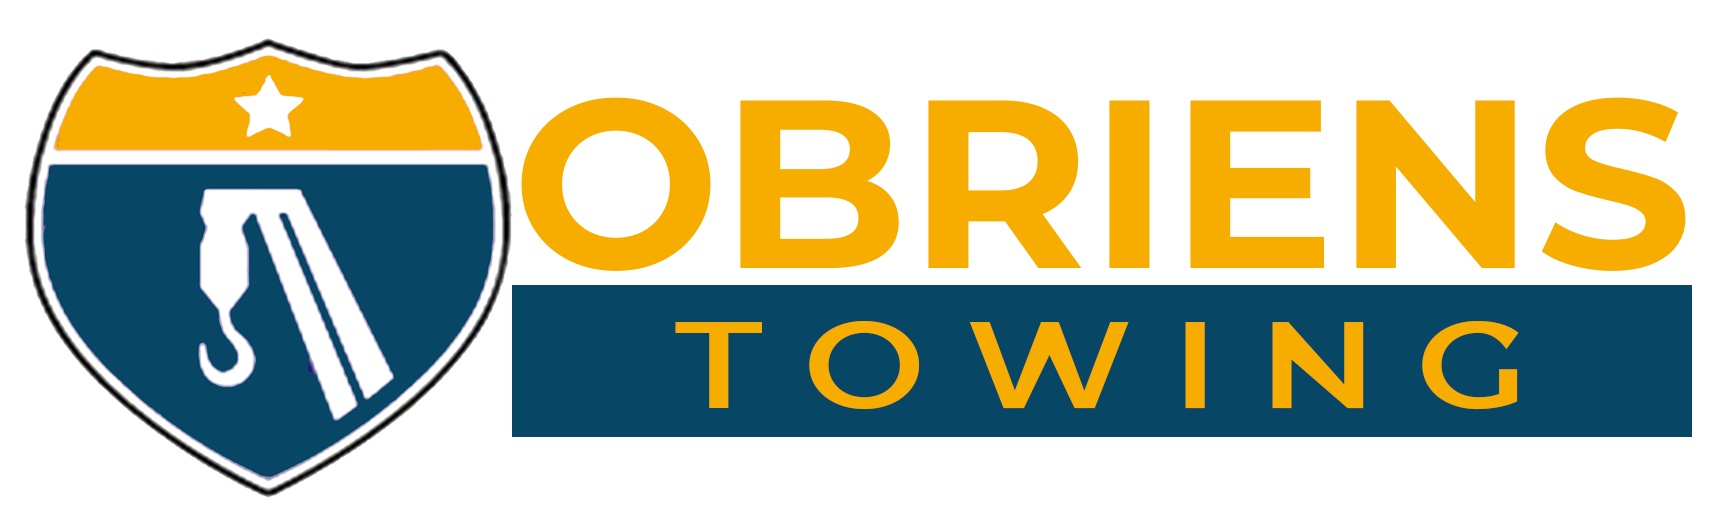 Obriens Towing